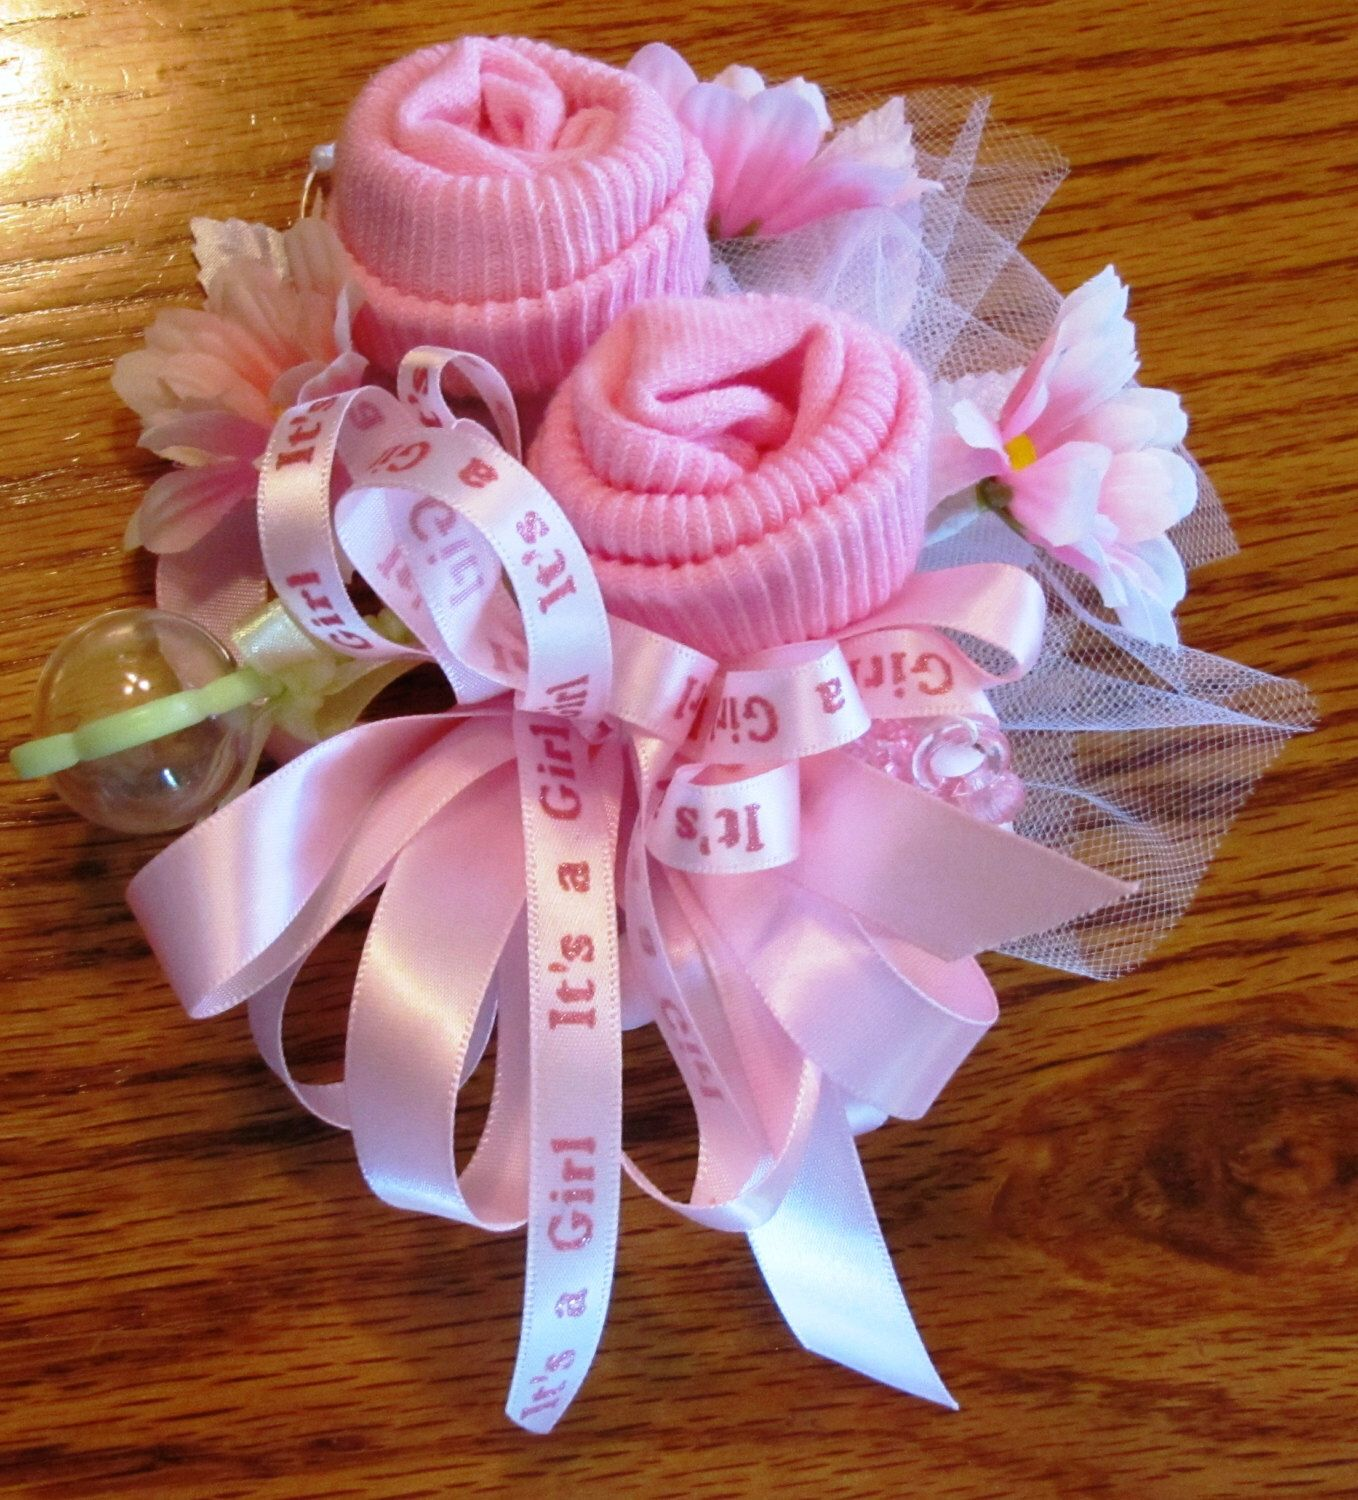 Baby Sock Corsage Handmade Baby Sock Shower Corsage Baby Shower